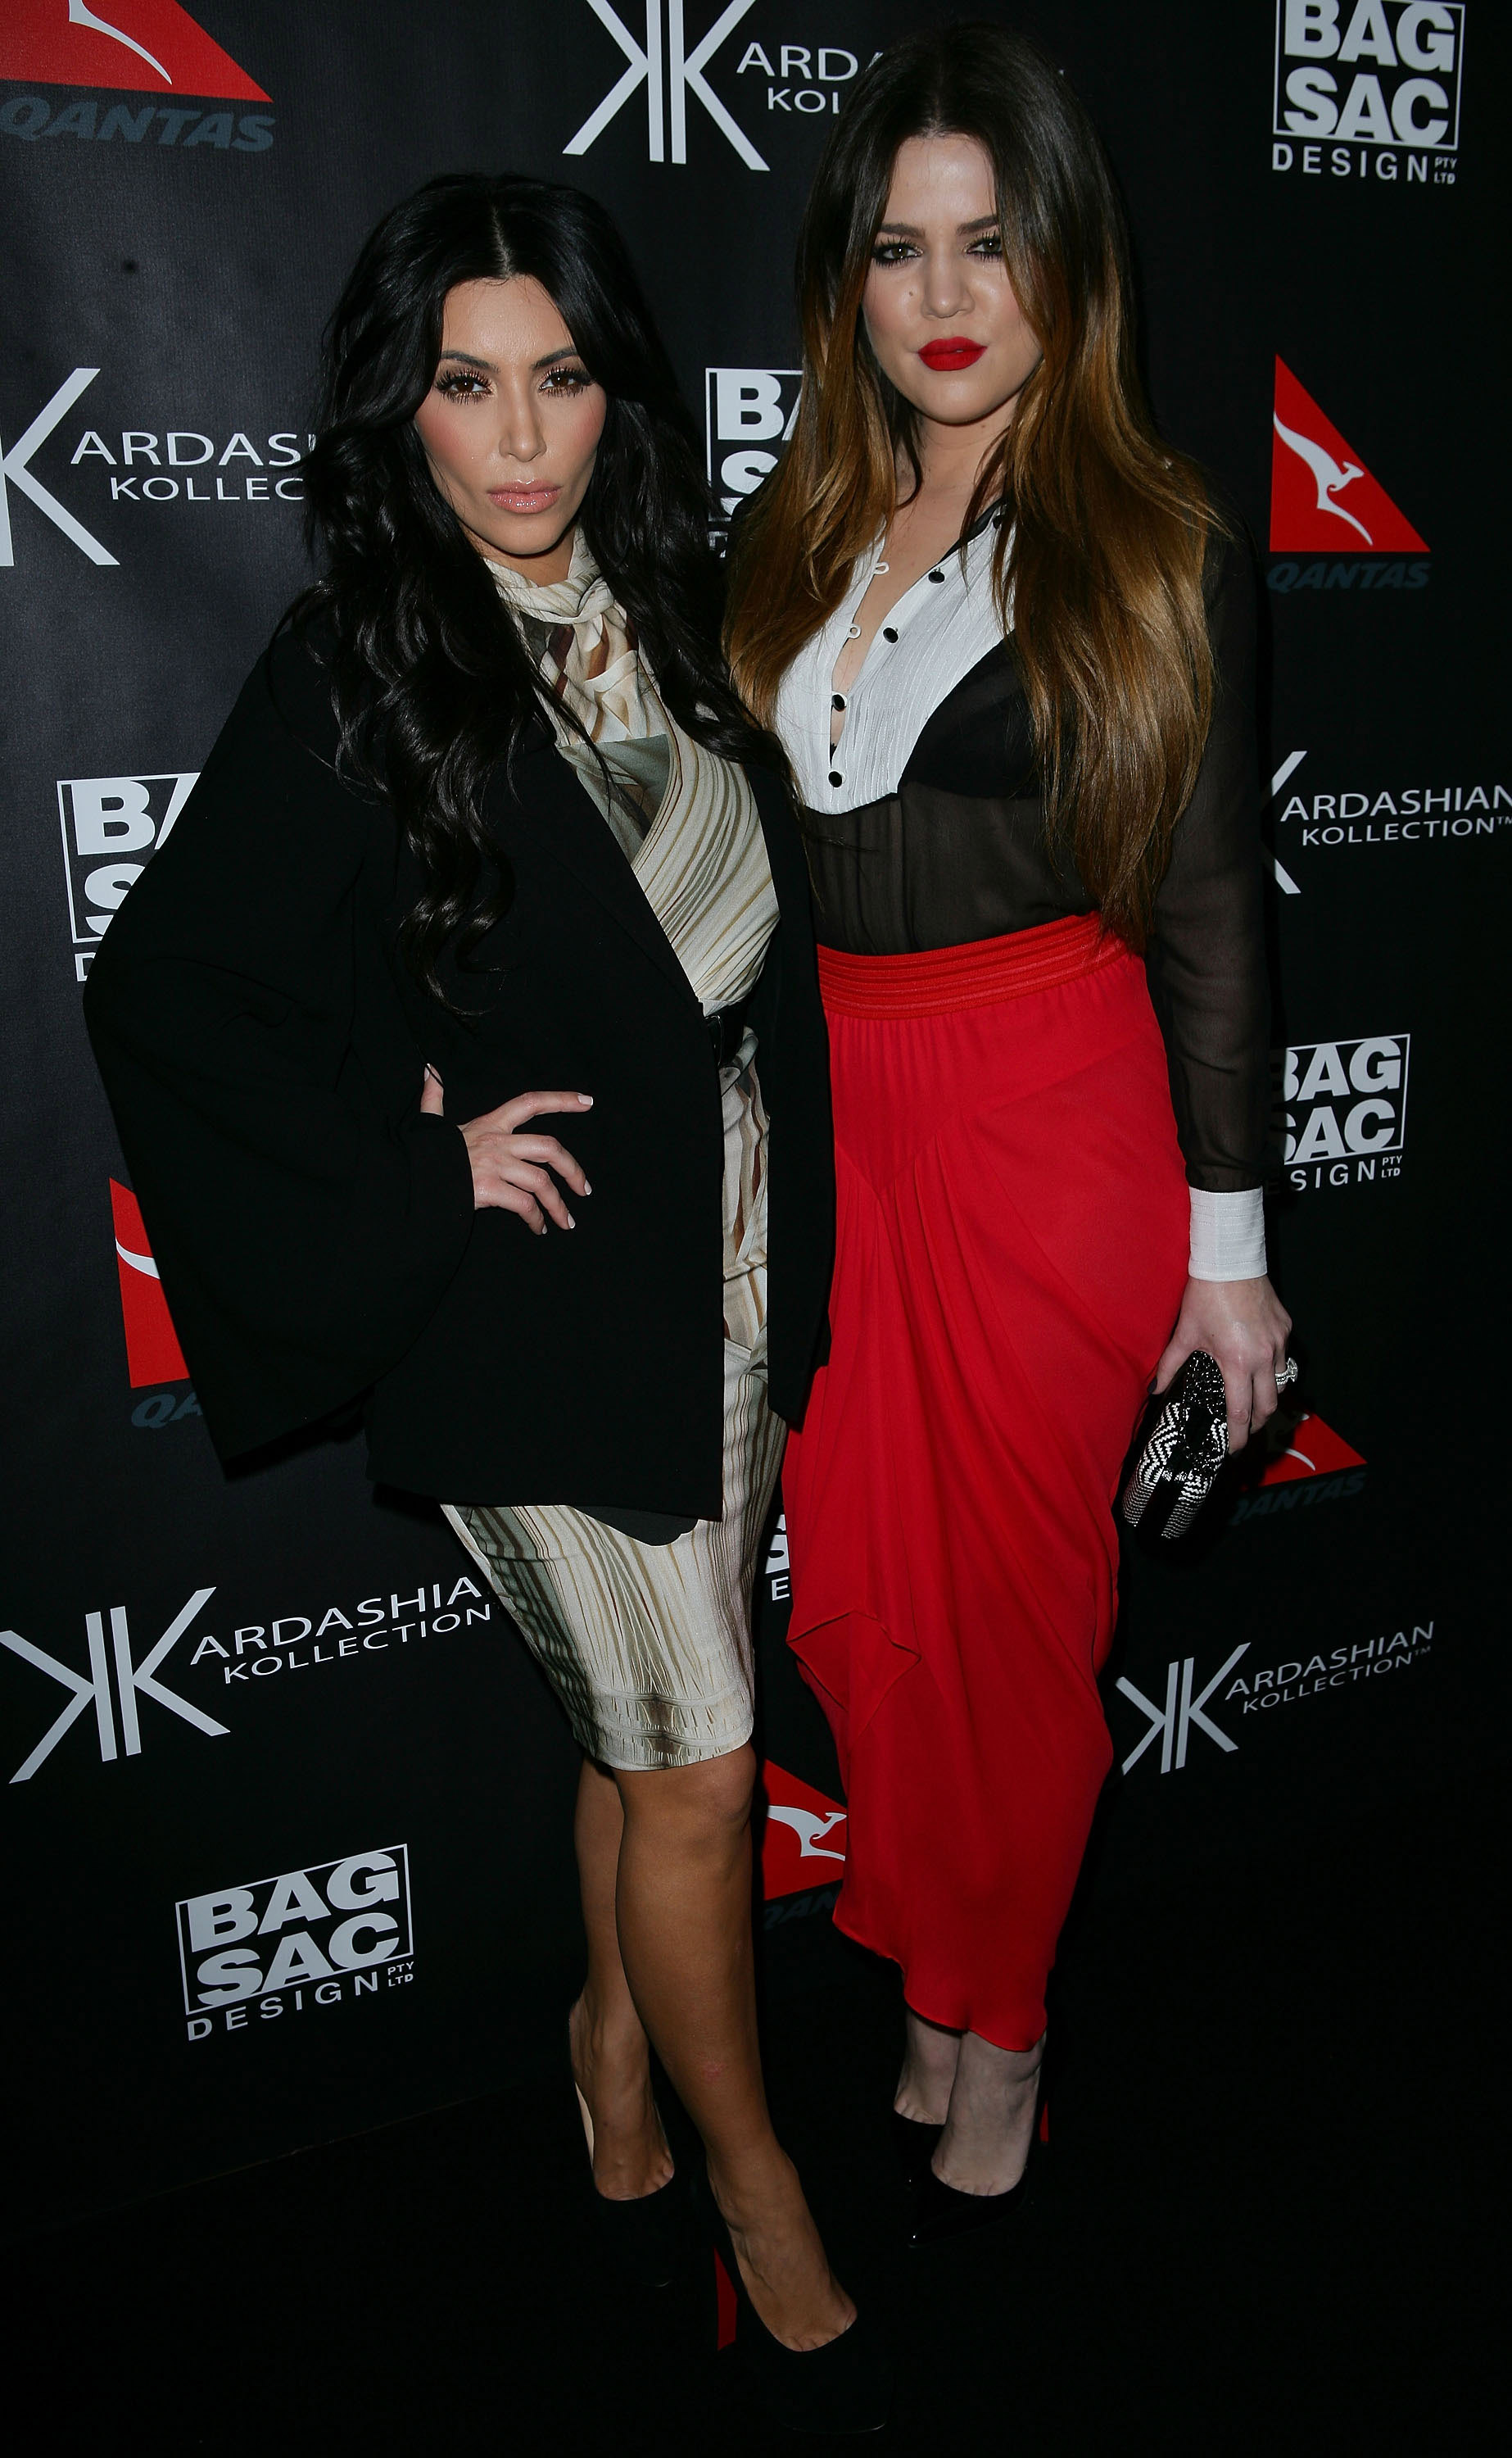 Kim and Khloe Kardashain posed together on the black carpet.